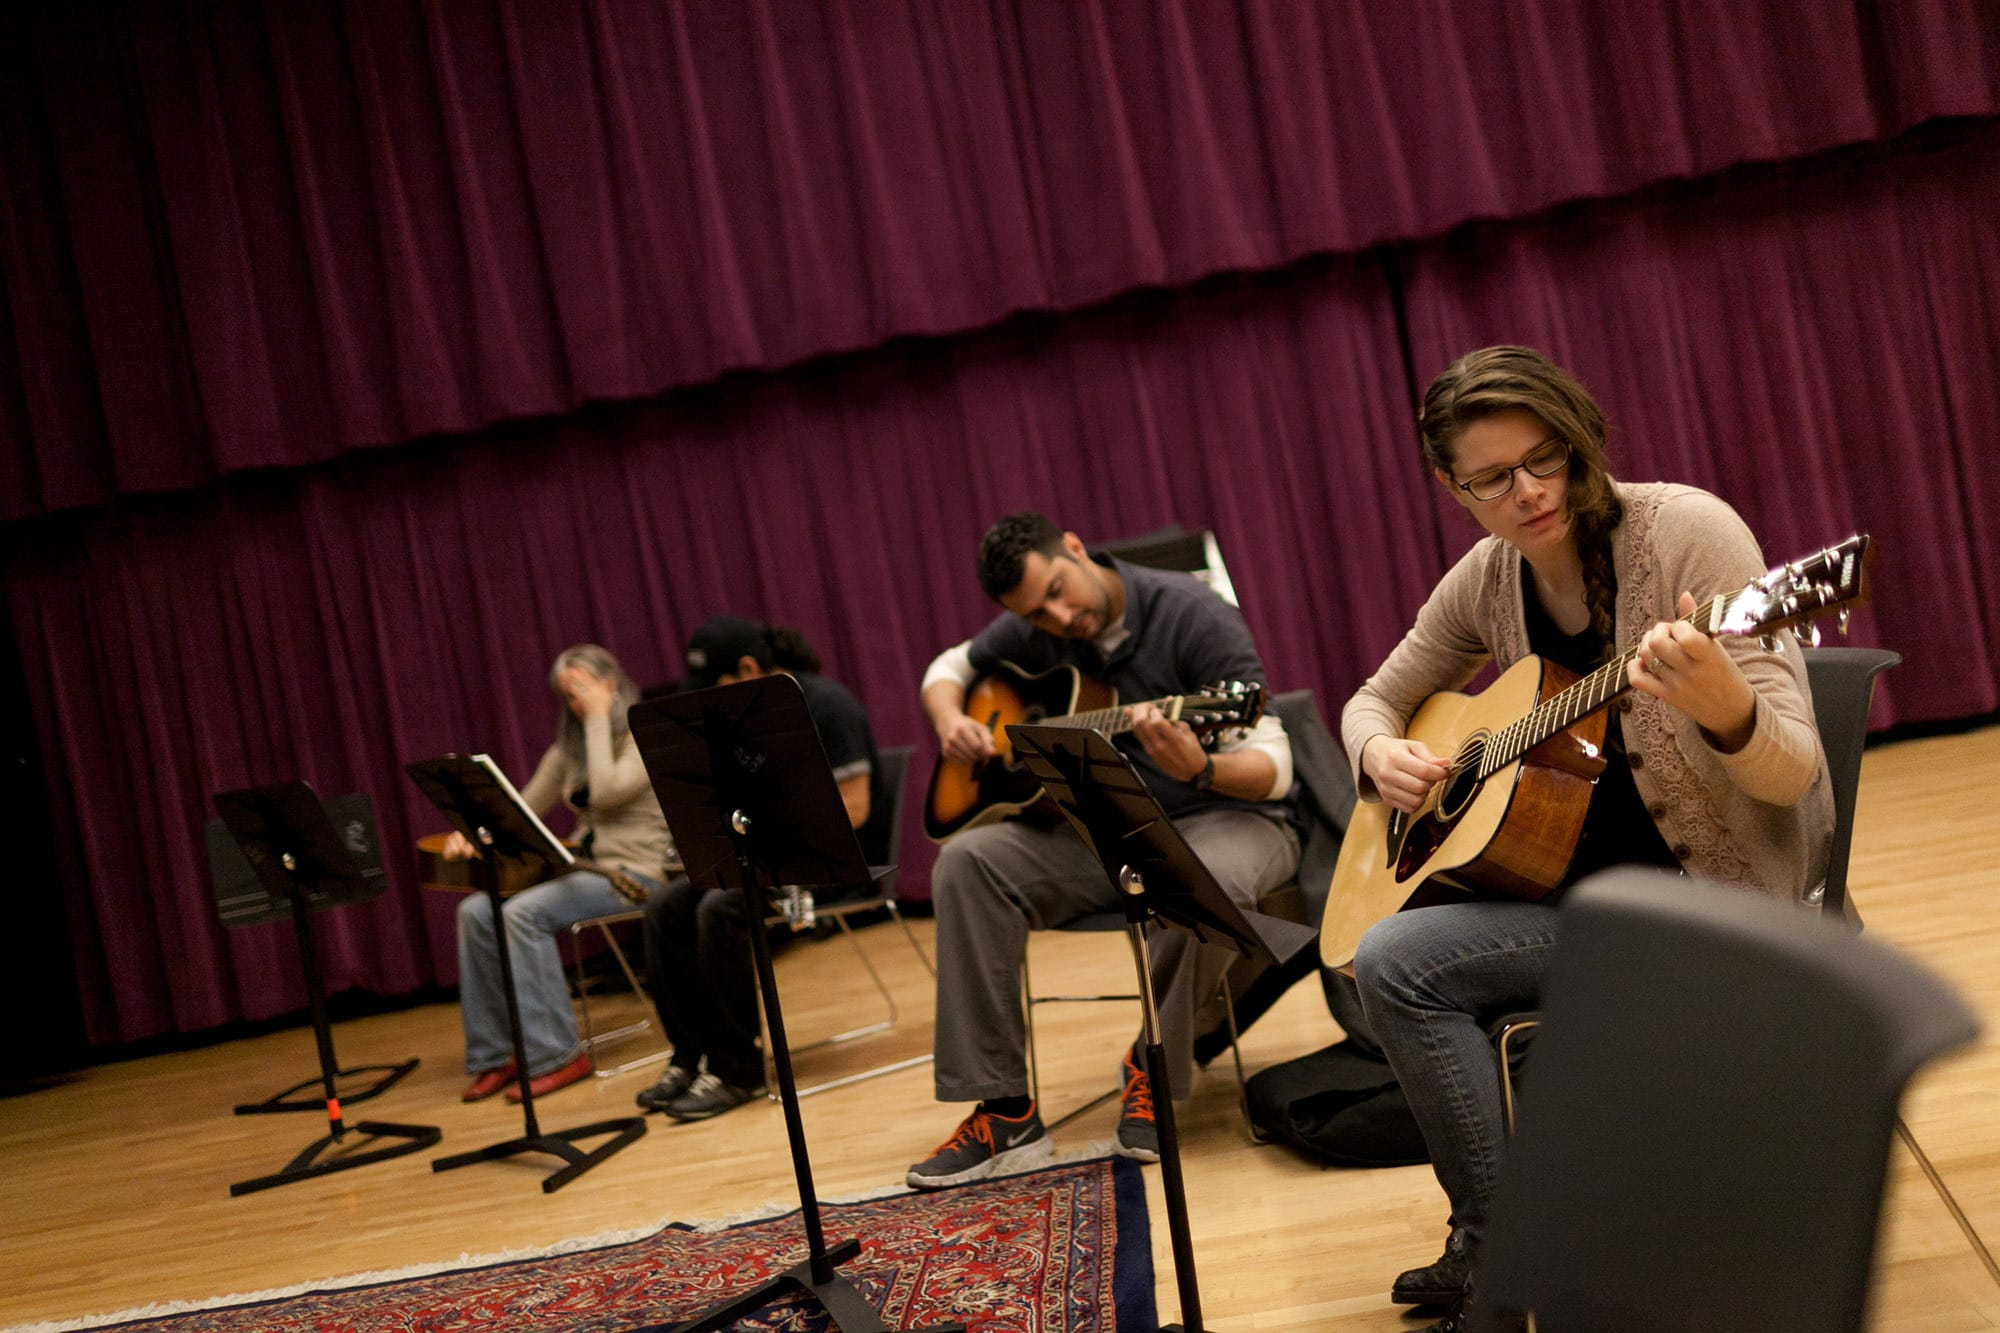 Guitar lessons at Old Town School of Folk Music.